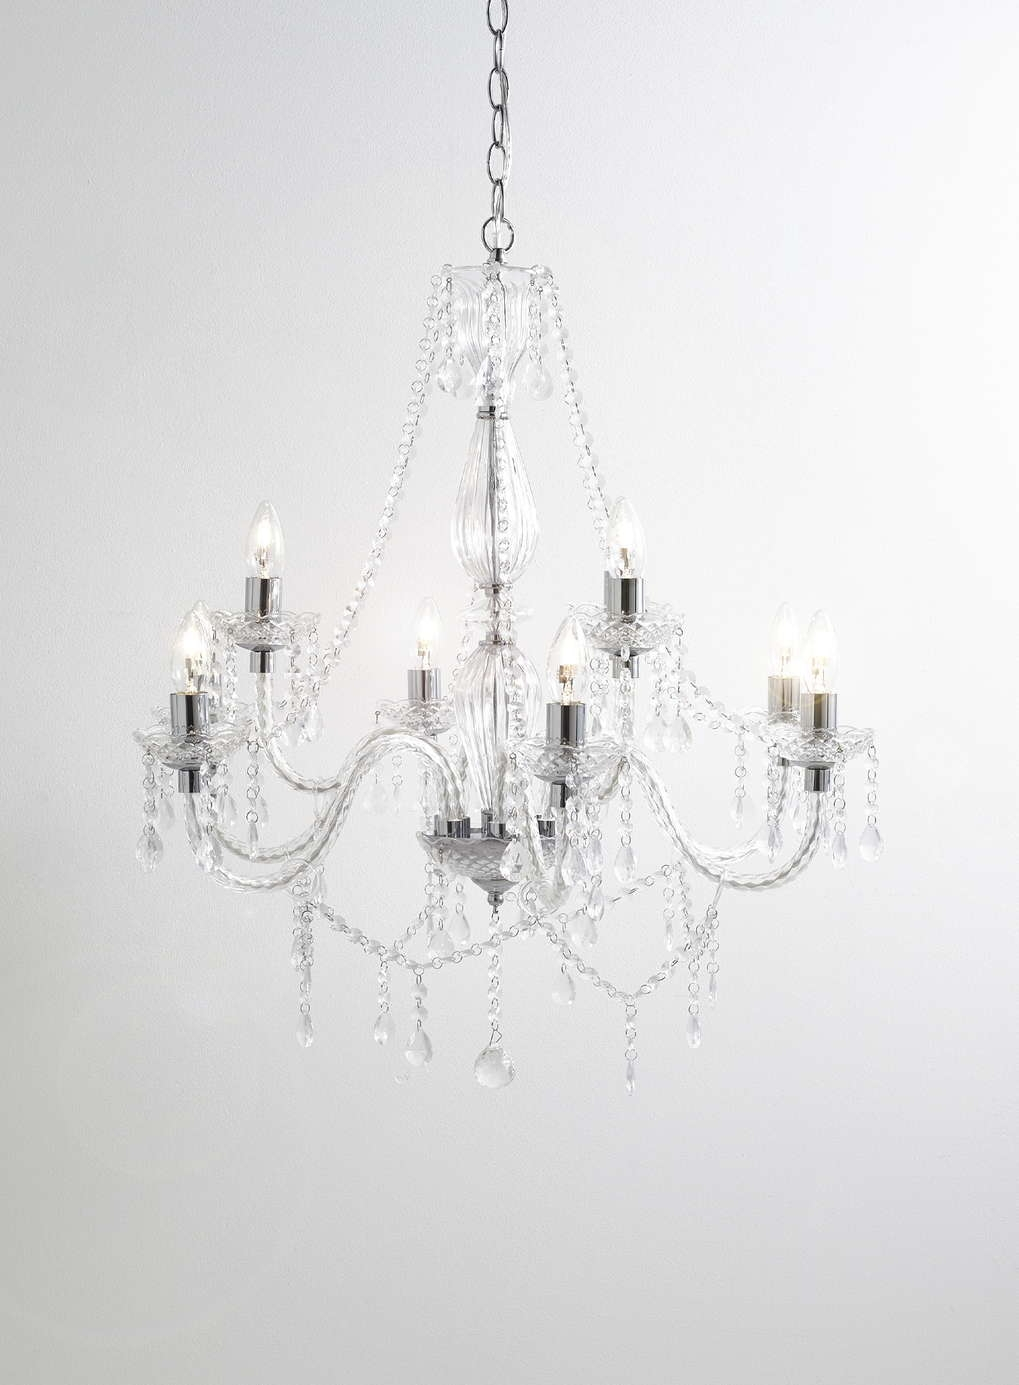 Chrome Bryony 9 Light Chandelier Bhs Bedroom Lighting Living Regarding Vintage Style Chandelier (Image 8 of 15)